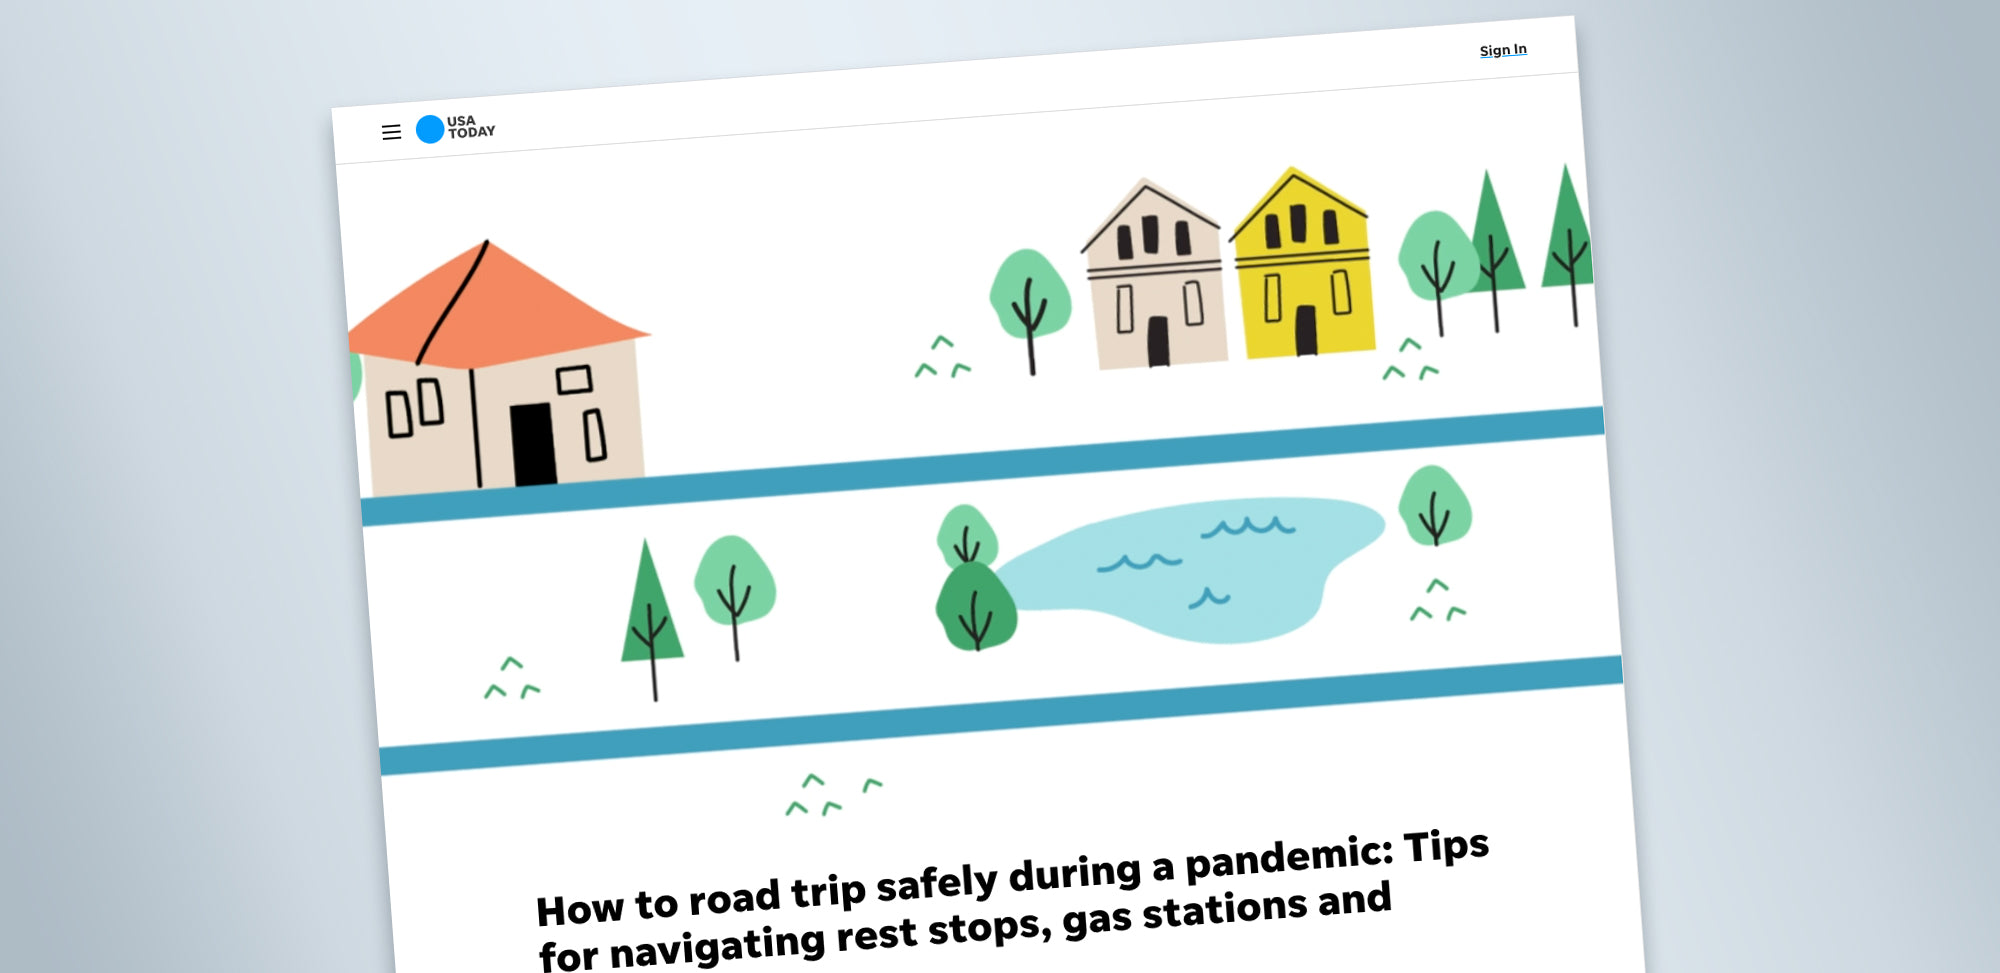 How to road trip safely during a pandemic: Tips for navigating rest stops, gas stations and hotels